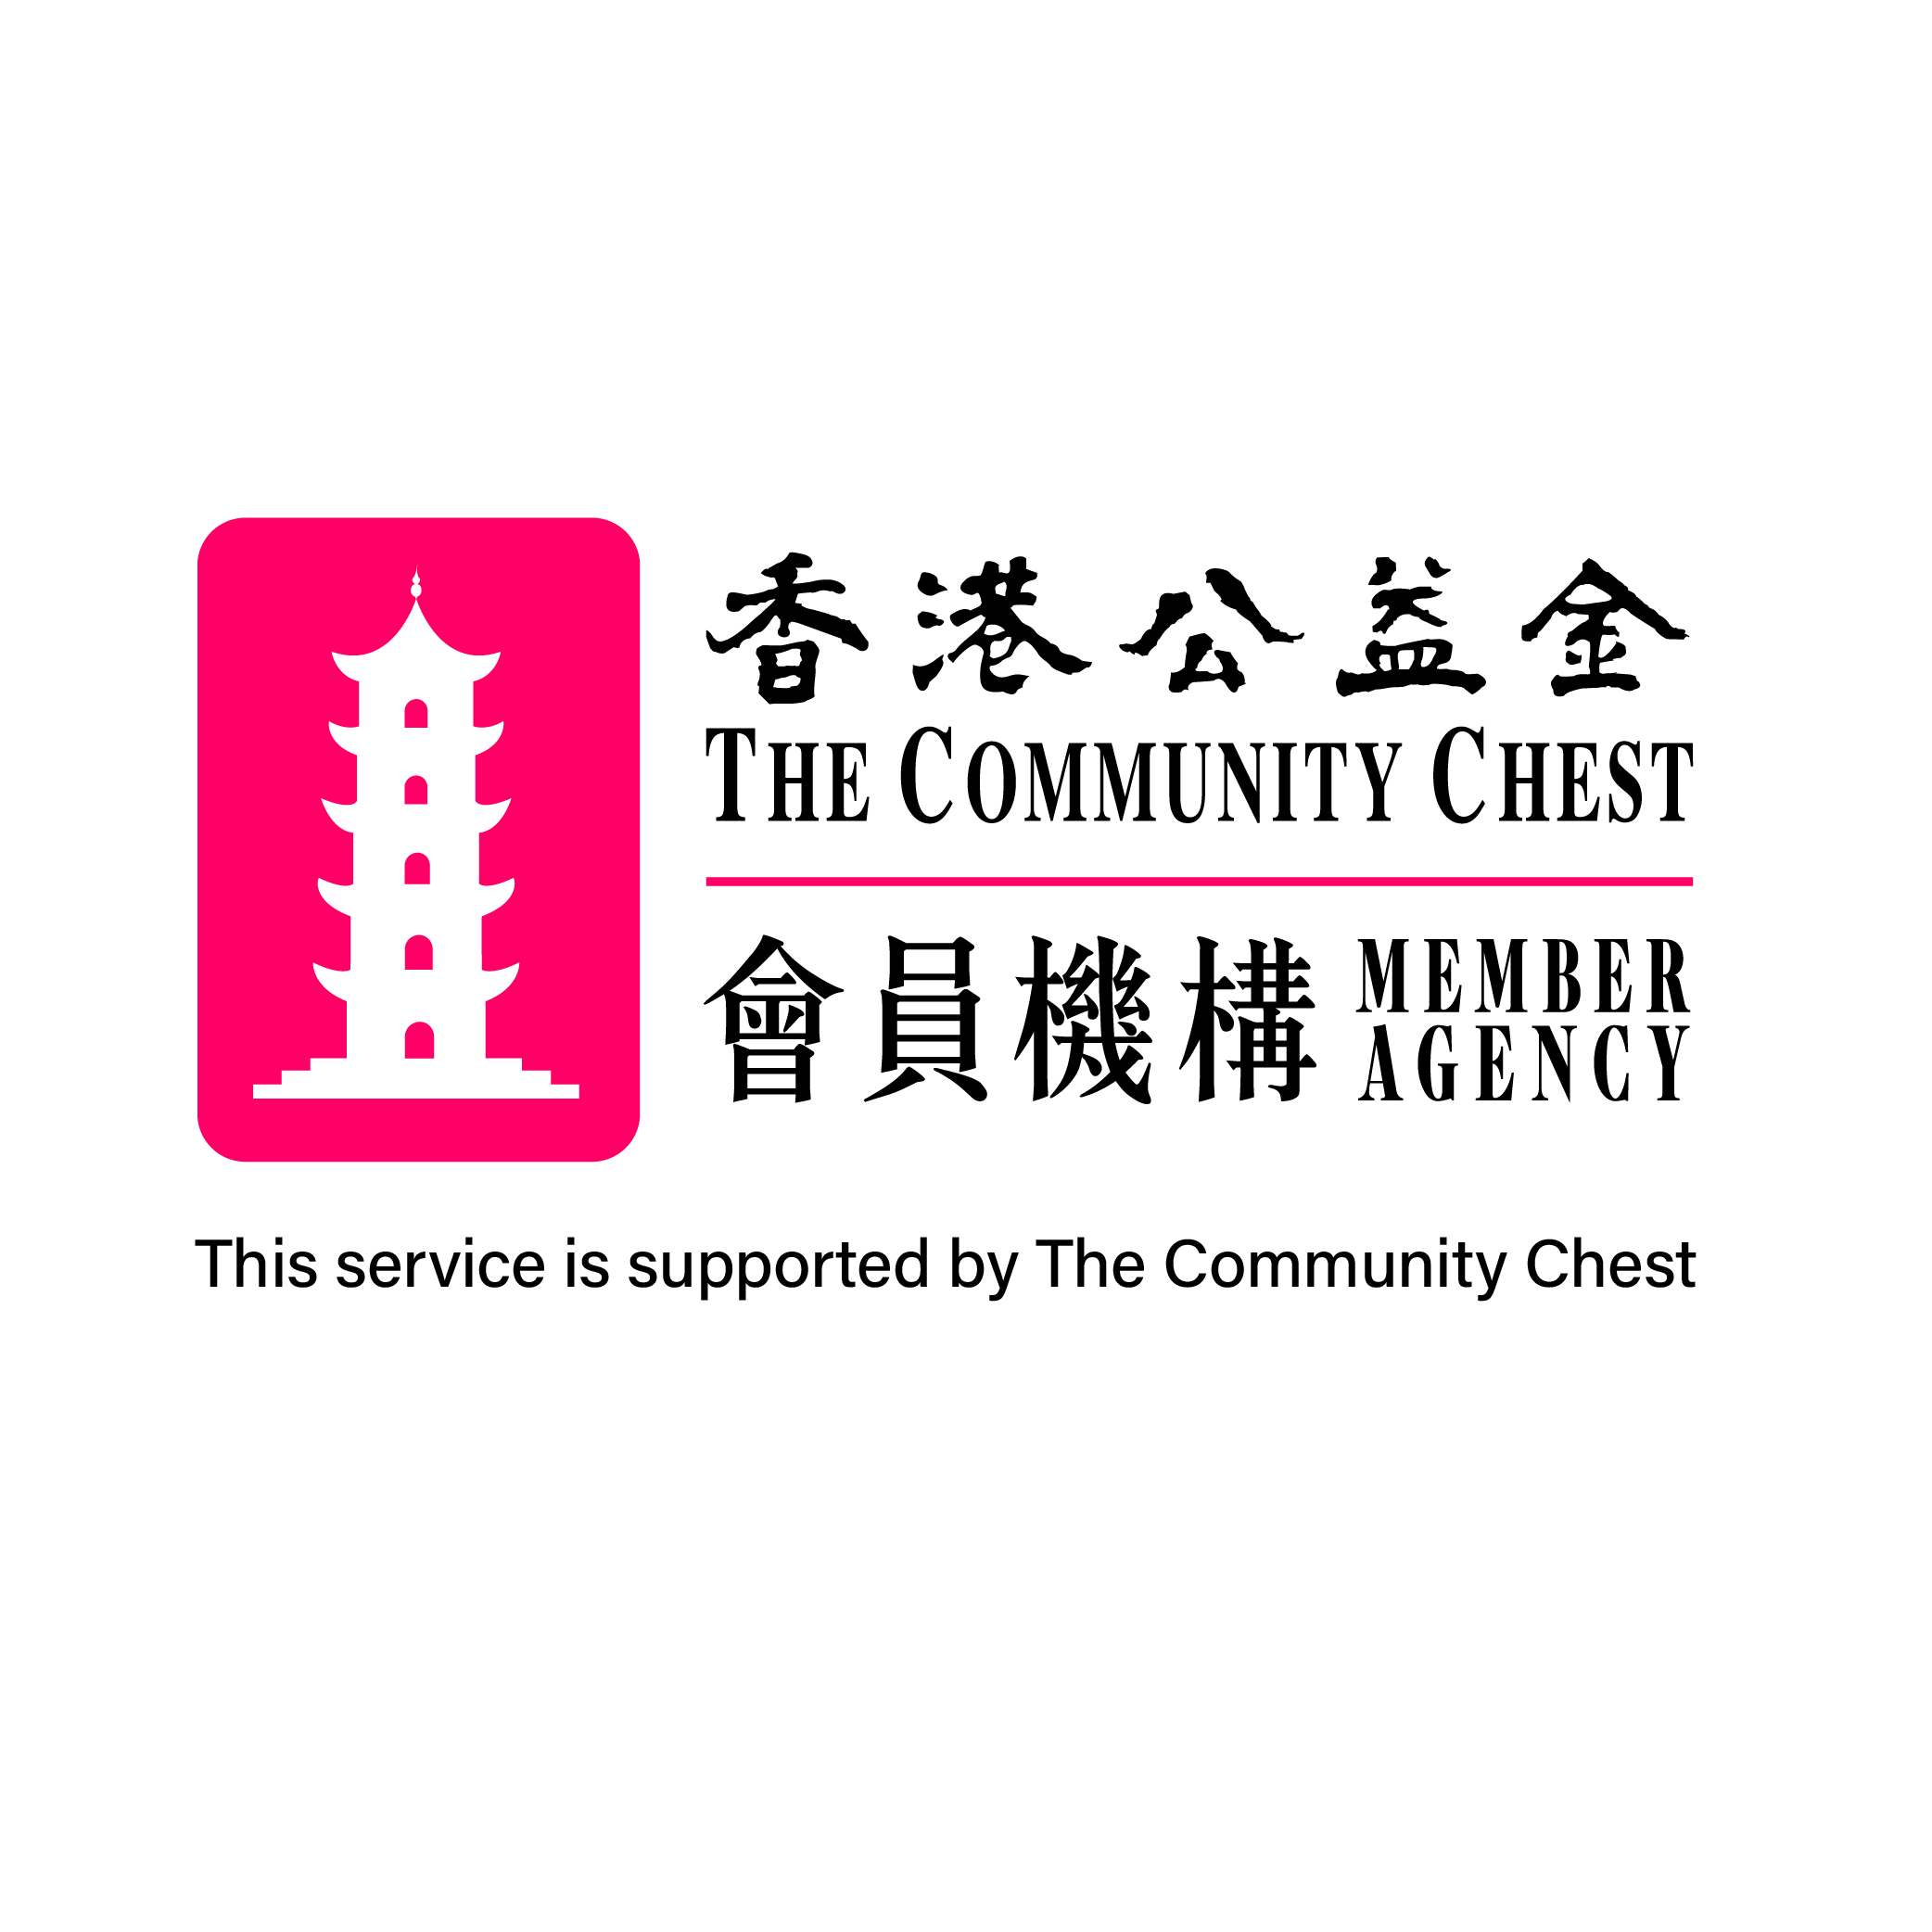 This service is supported by The Community Chest